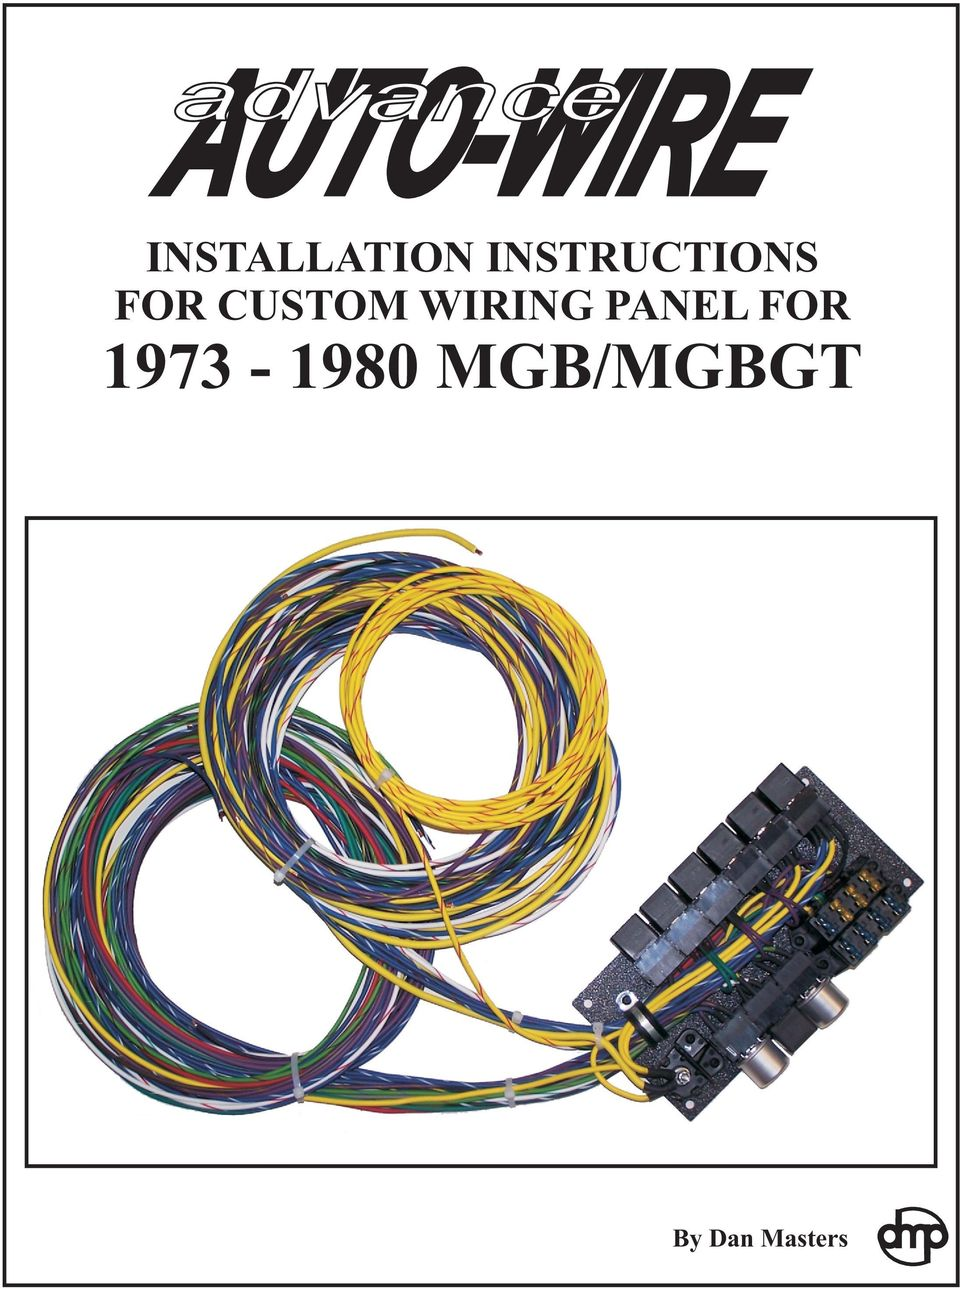 1980 Mgb Auto Wiring Diagram Strategy Design Plan Yale Glc080 Wire Installation Instructions For Custom Panel Rh Docplayer Net 1979 Electrical Mg